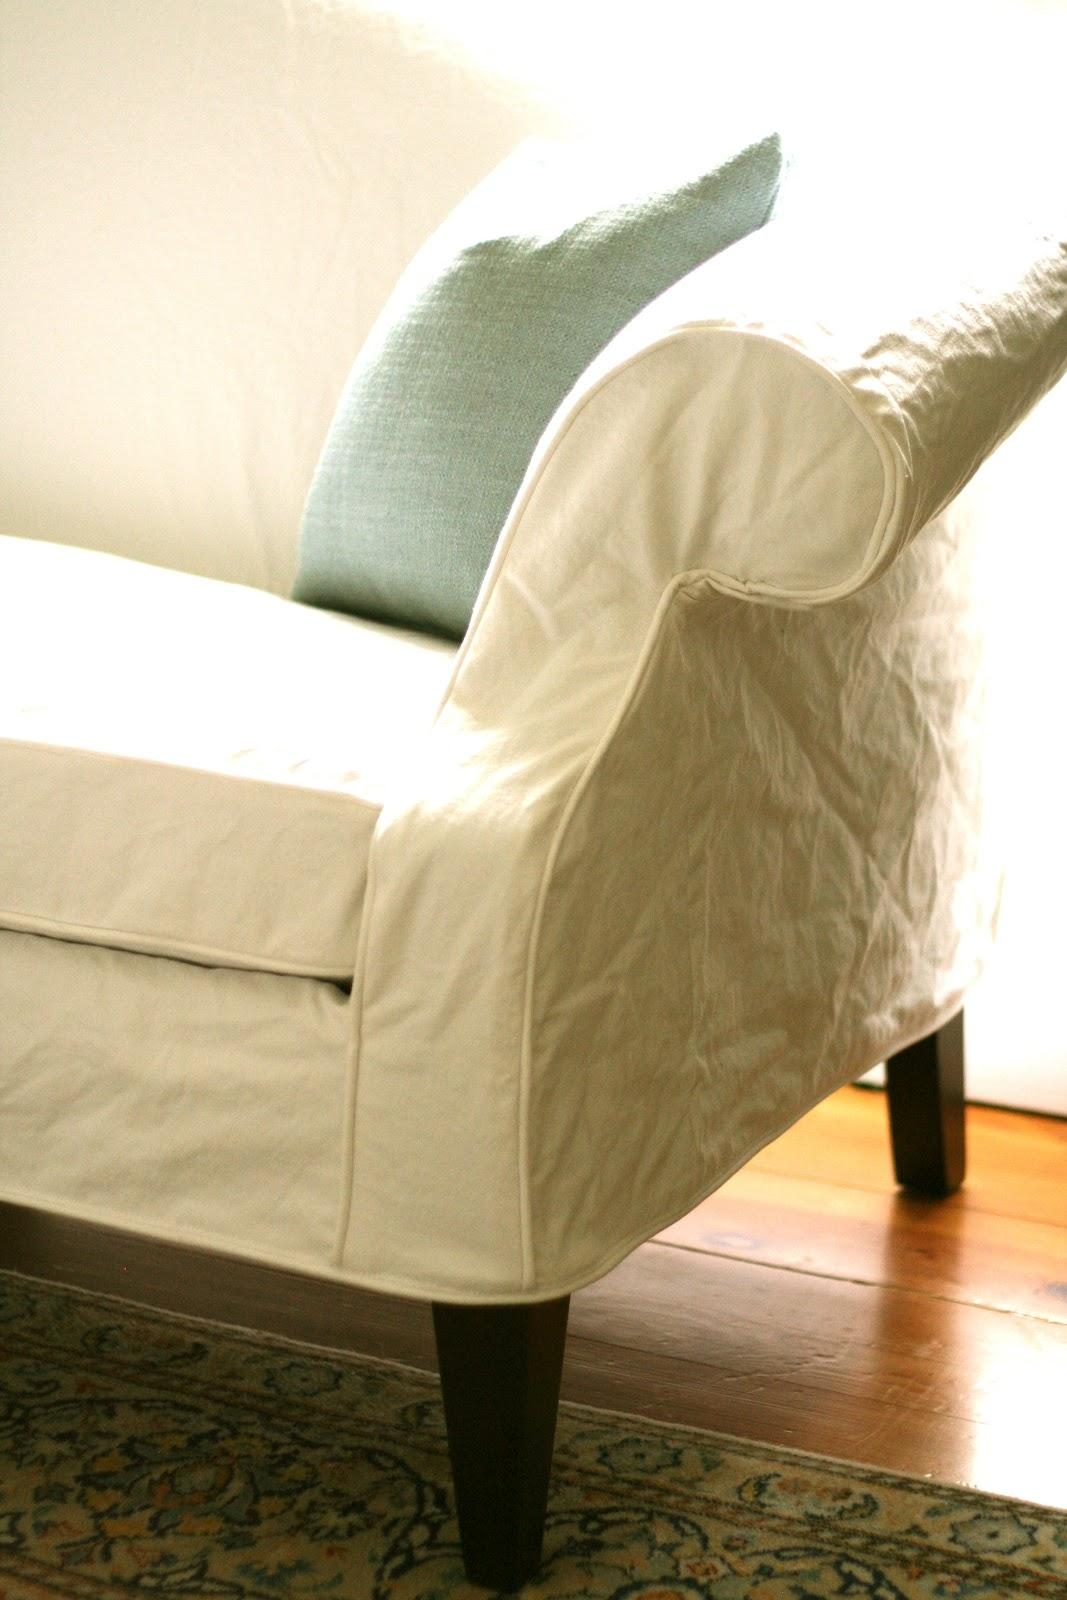 Custom Slipcoversshelley: White Camel Back Couch Regarding Camel Back Sofa Slipcovers (Image 9 of 20)